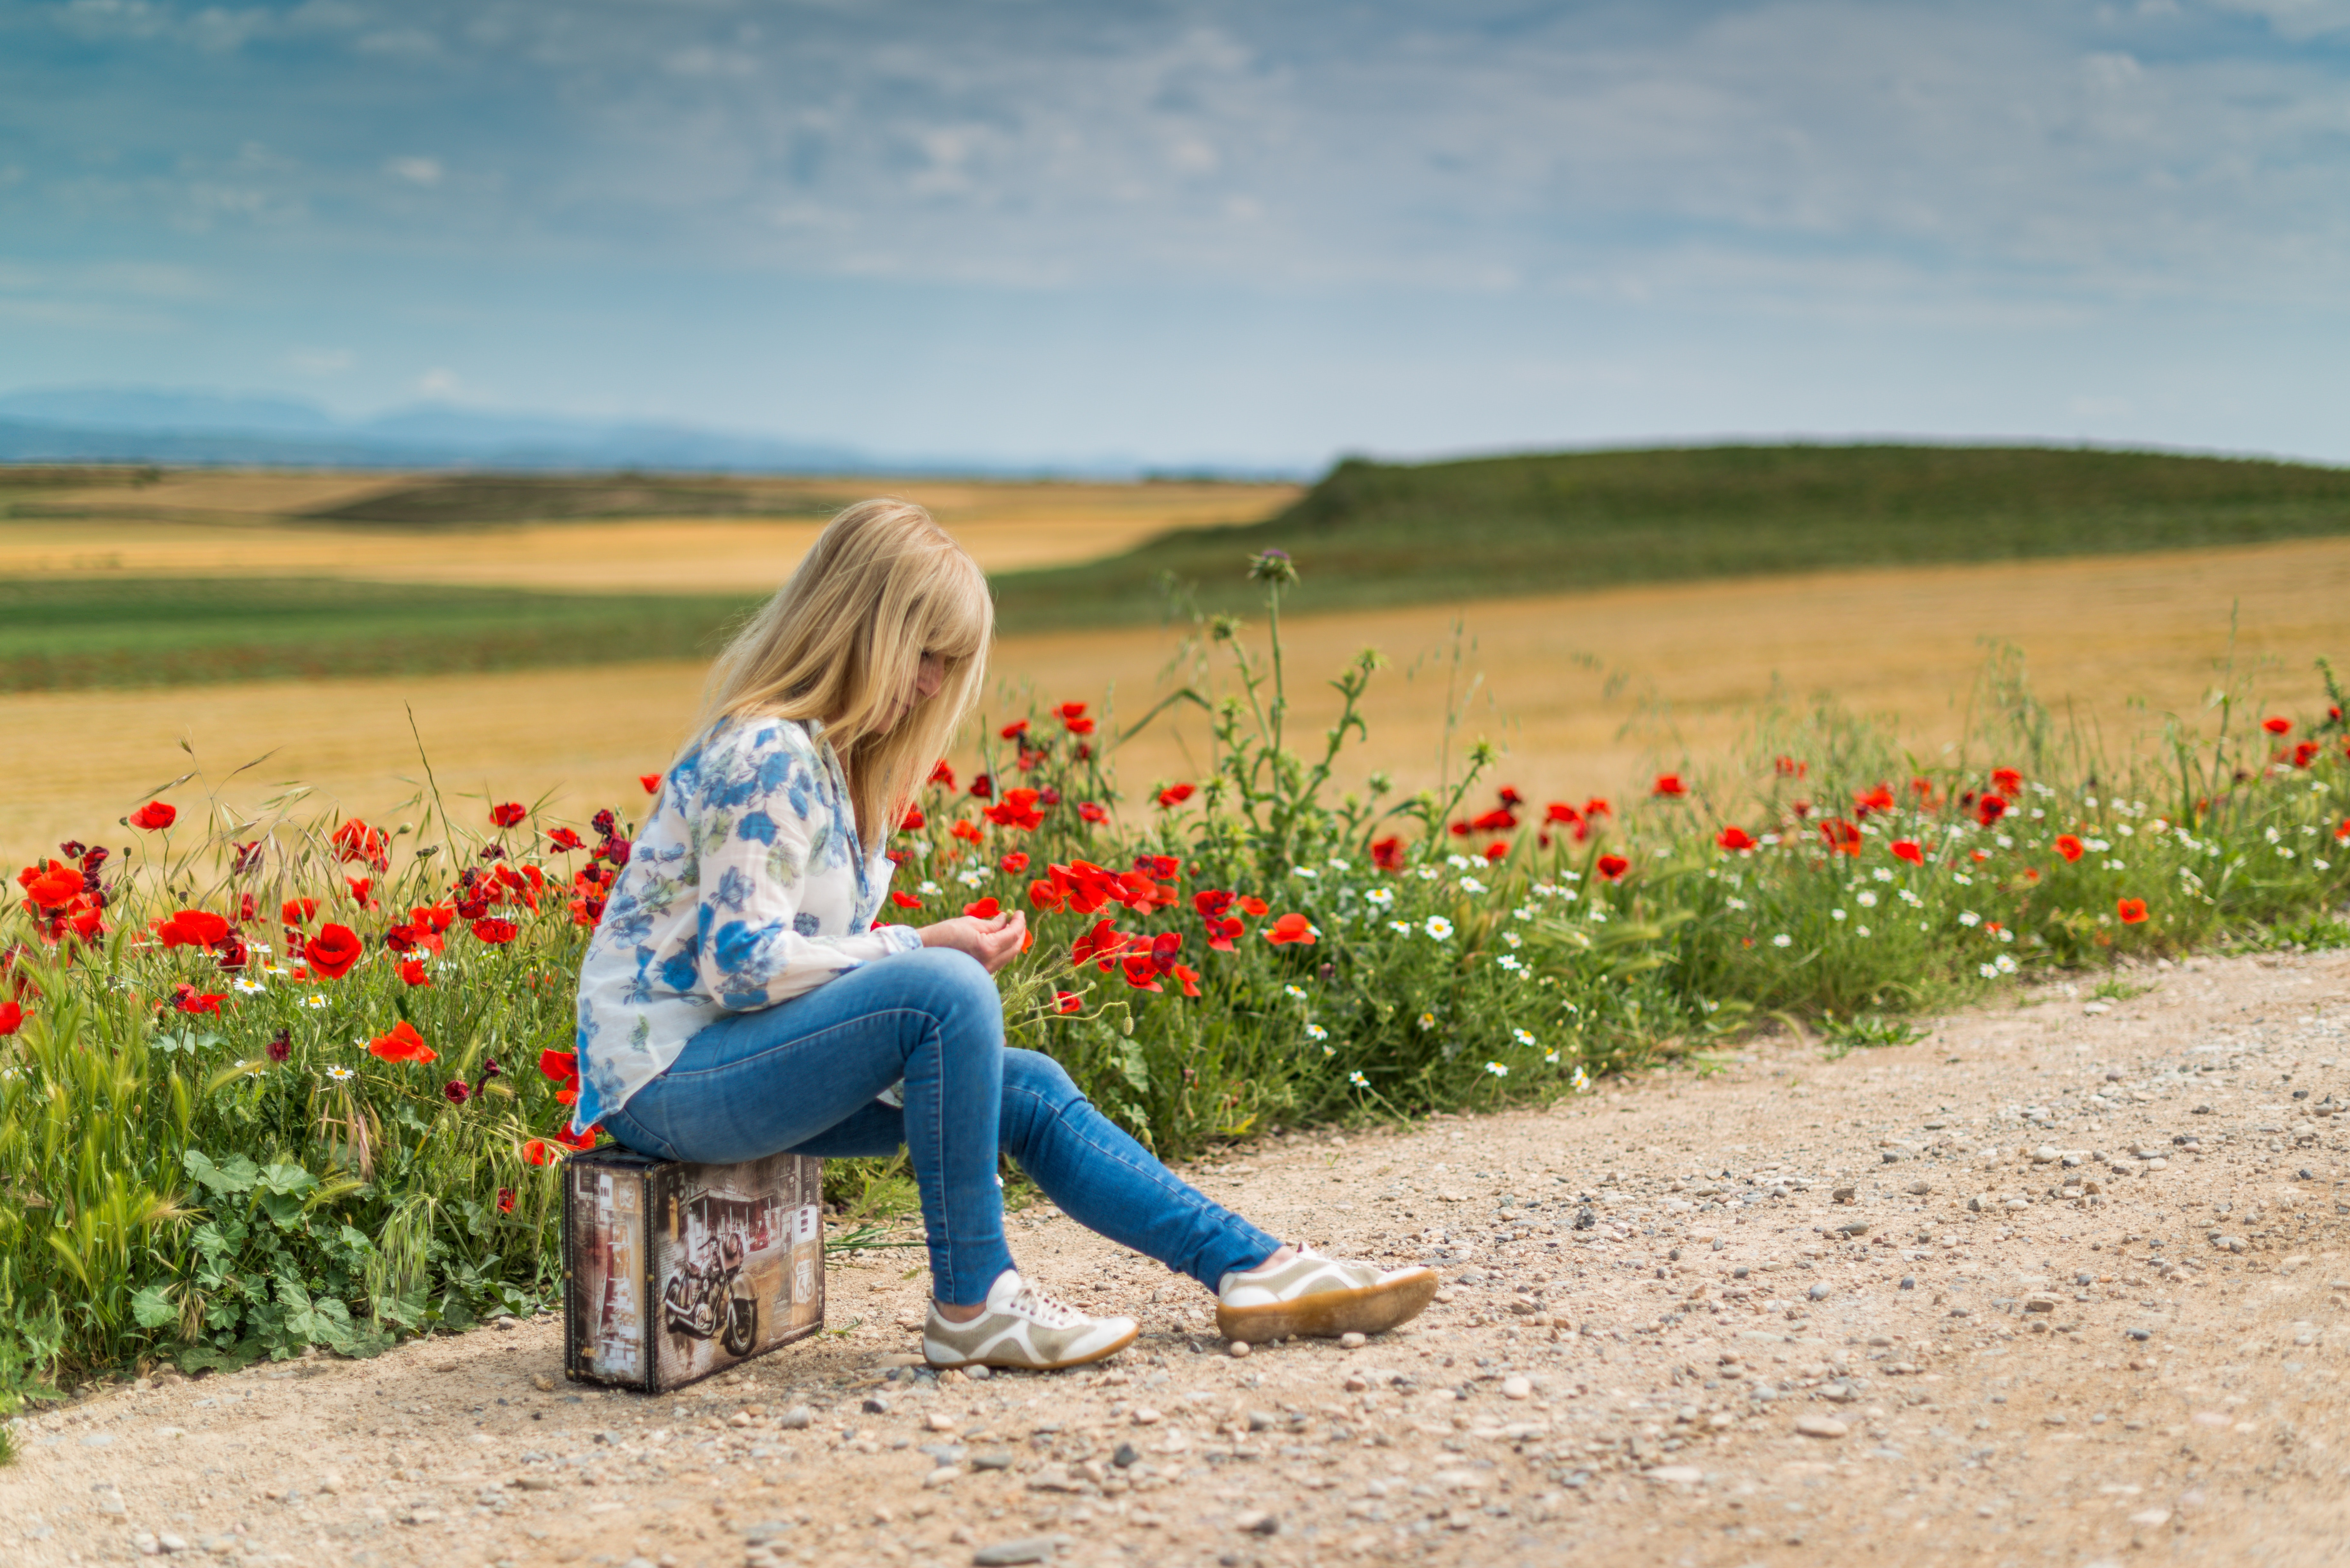 Girl Near Red Petal Flowers at Daytime, Blonde, Path, Way, Trail roads, HQ Photo